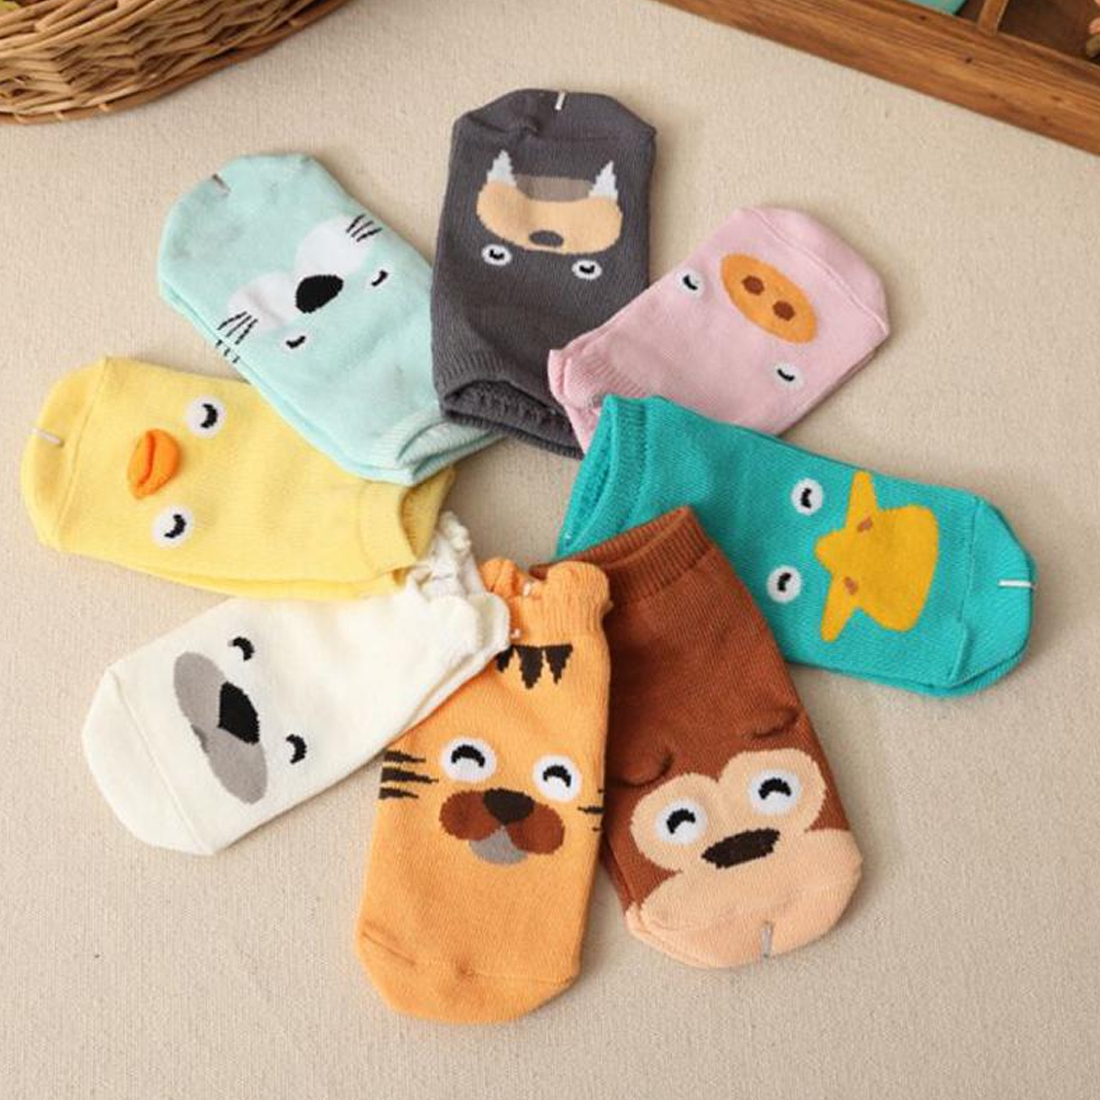 Cute Solid Color Woolen Socks Winter Thick Baby Terry Socks Warm Newborn Cotton Boys Girls Cute Toddler Socks Baby Infant Socks